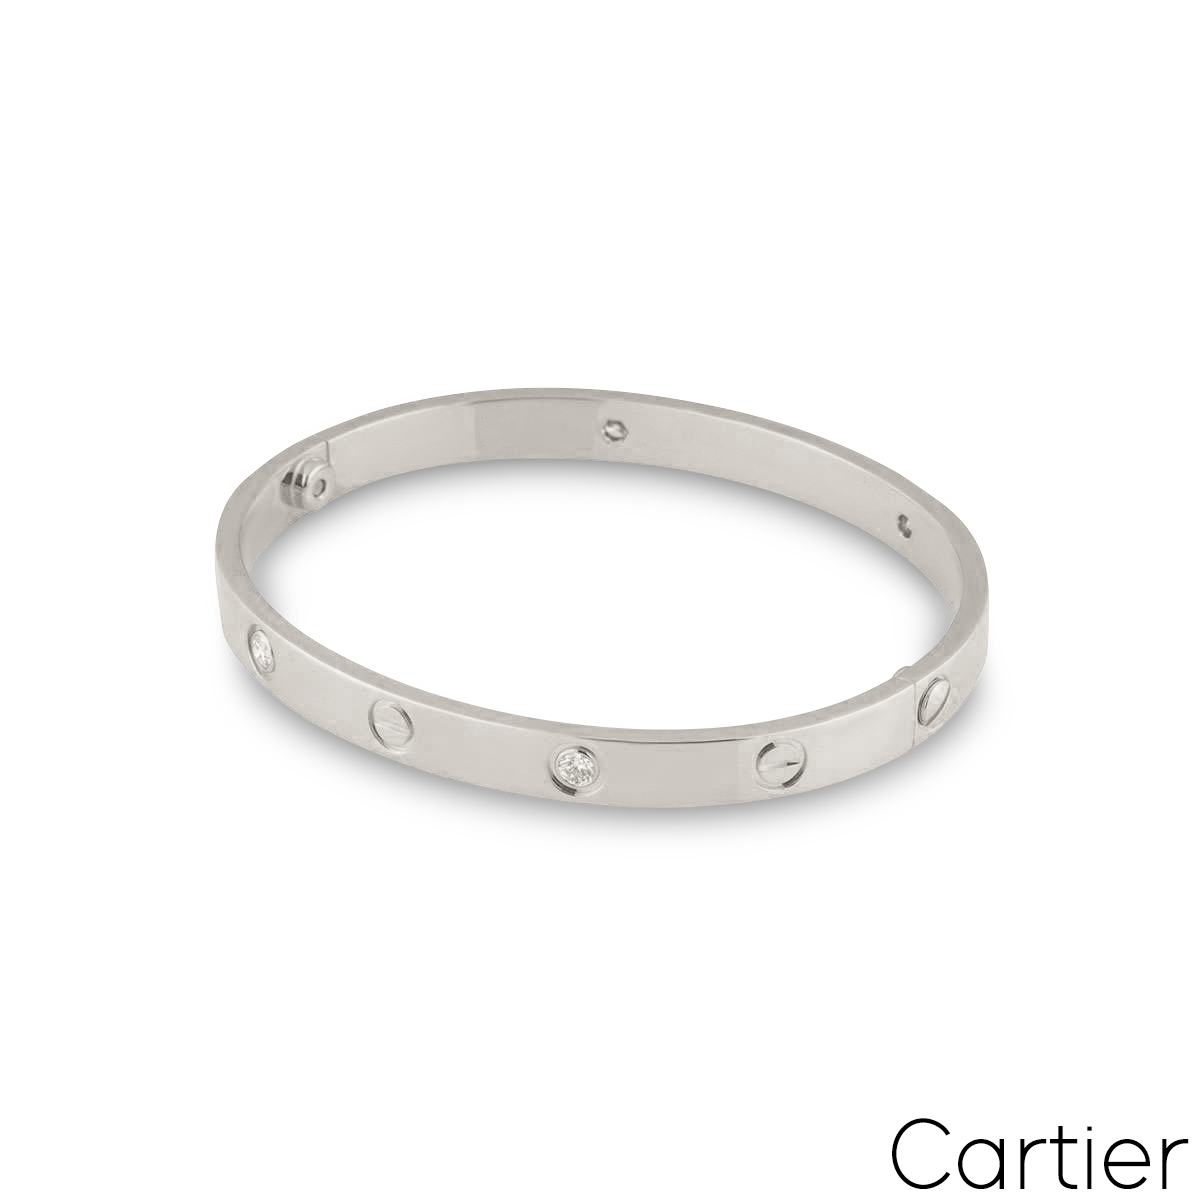 Cartier White Gold Half Diamond Love Bracelet Size 16 B6035816